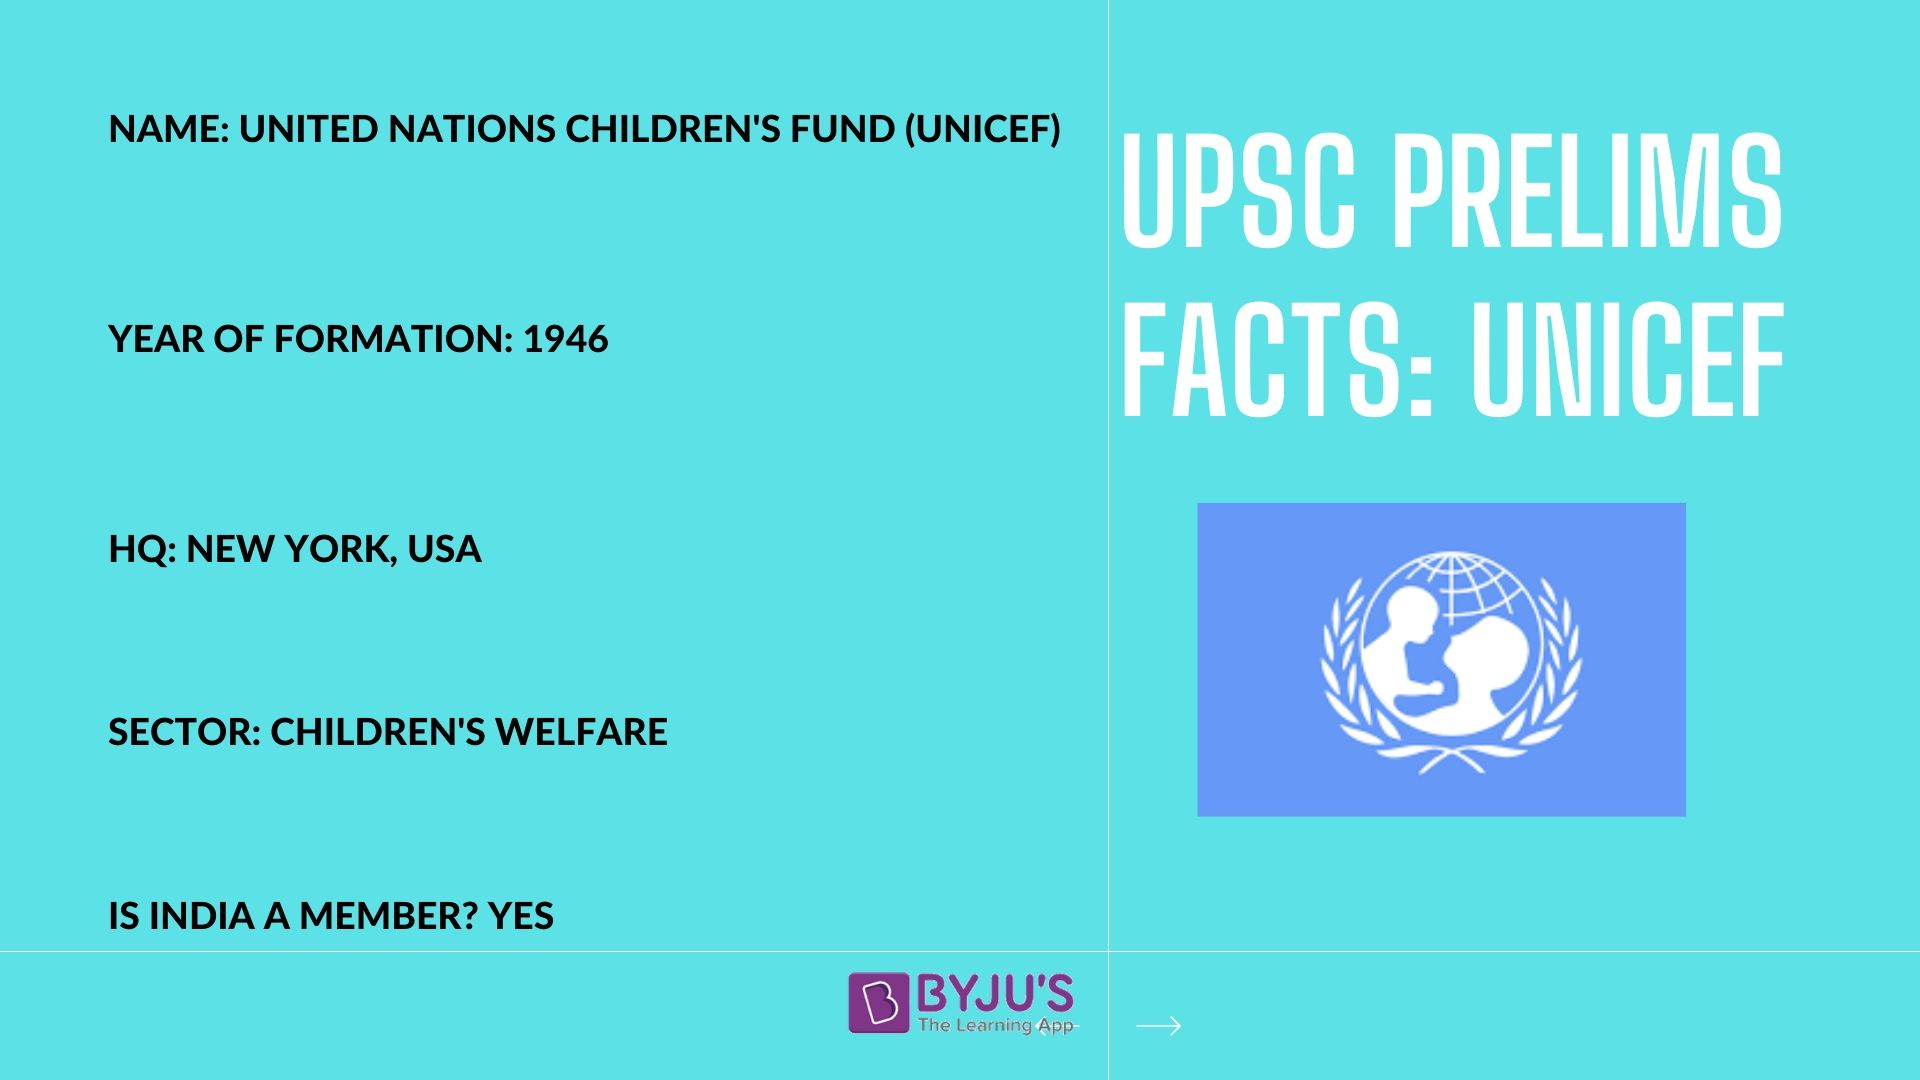 UNICEF - UPSC Prelims Facts